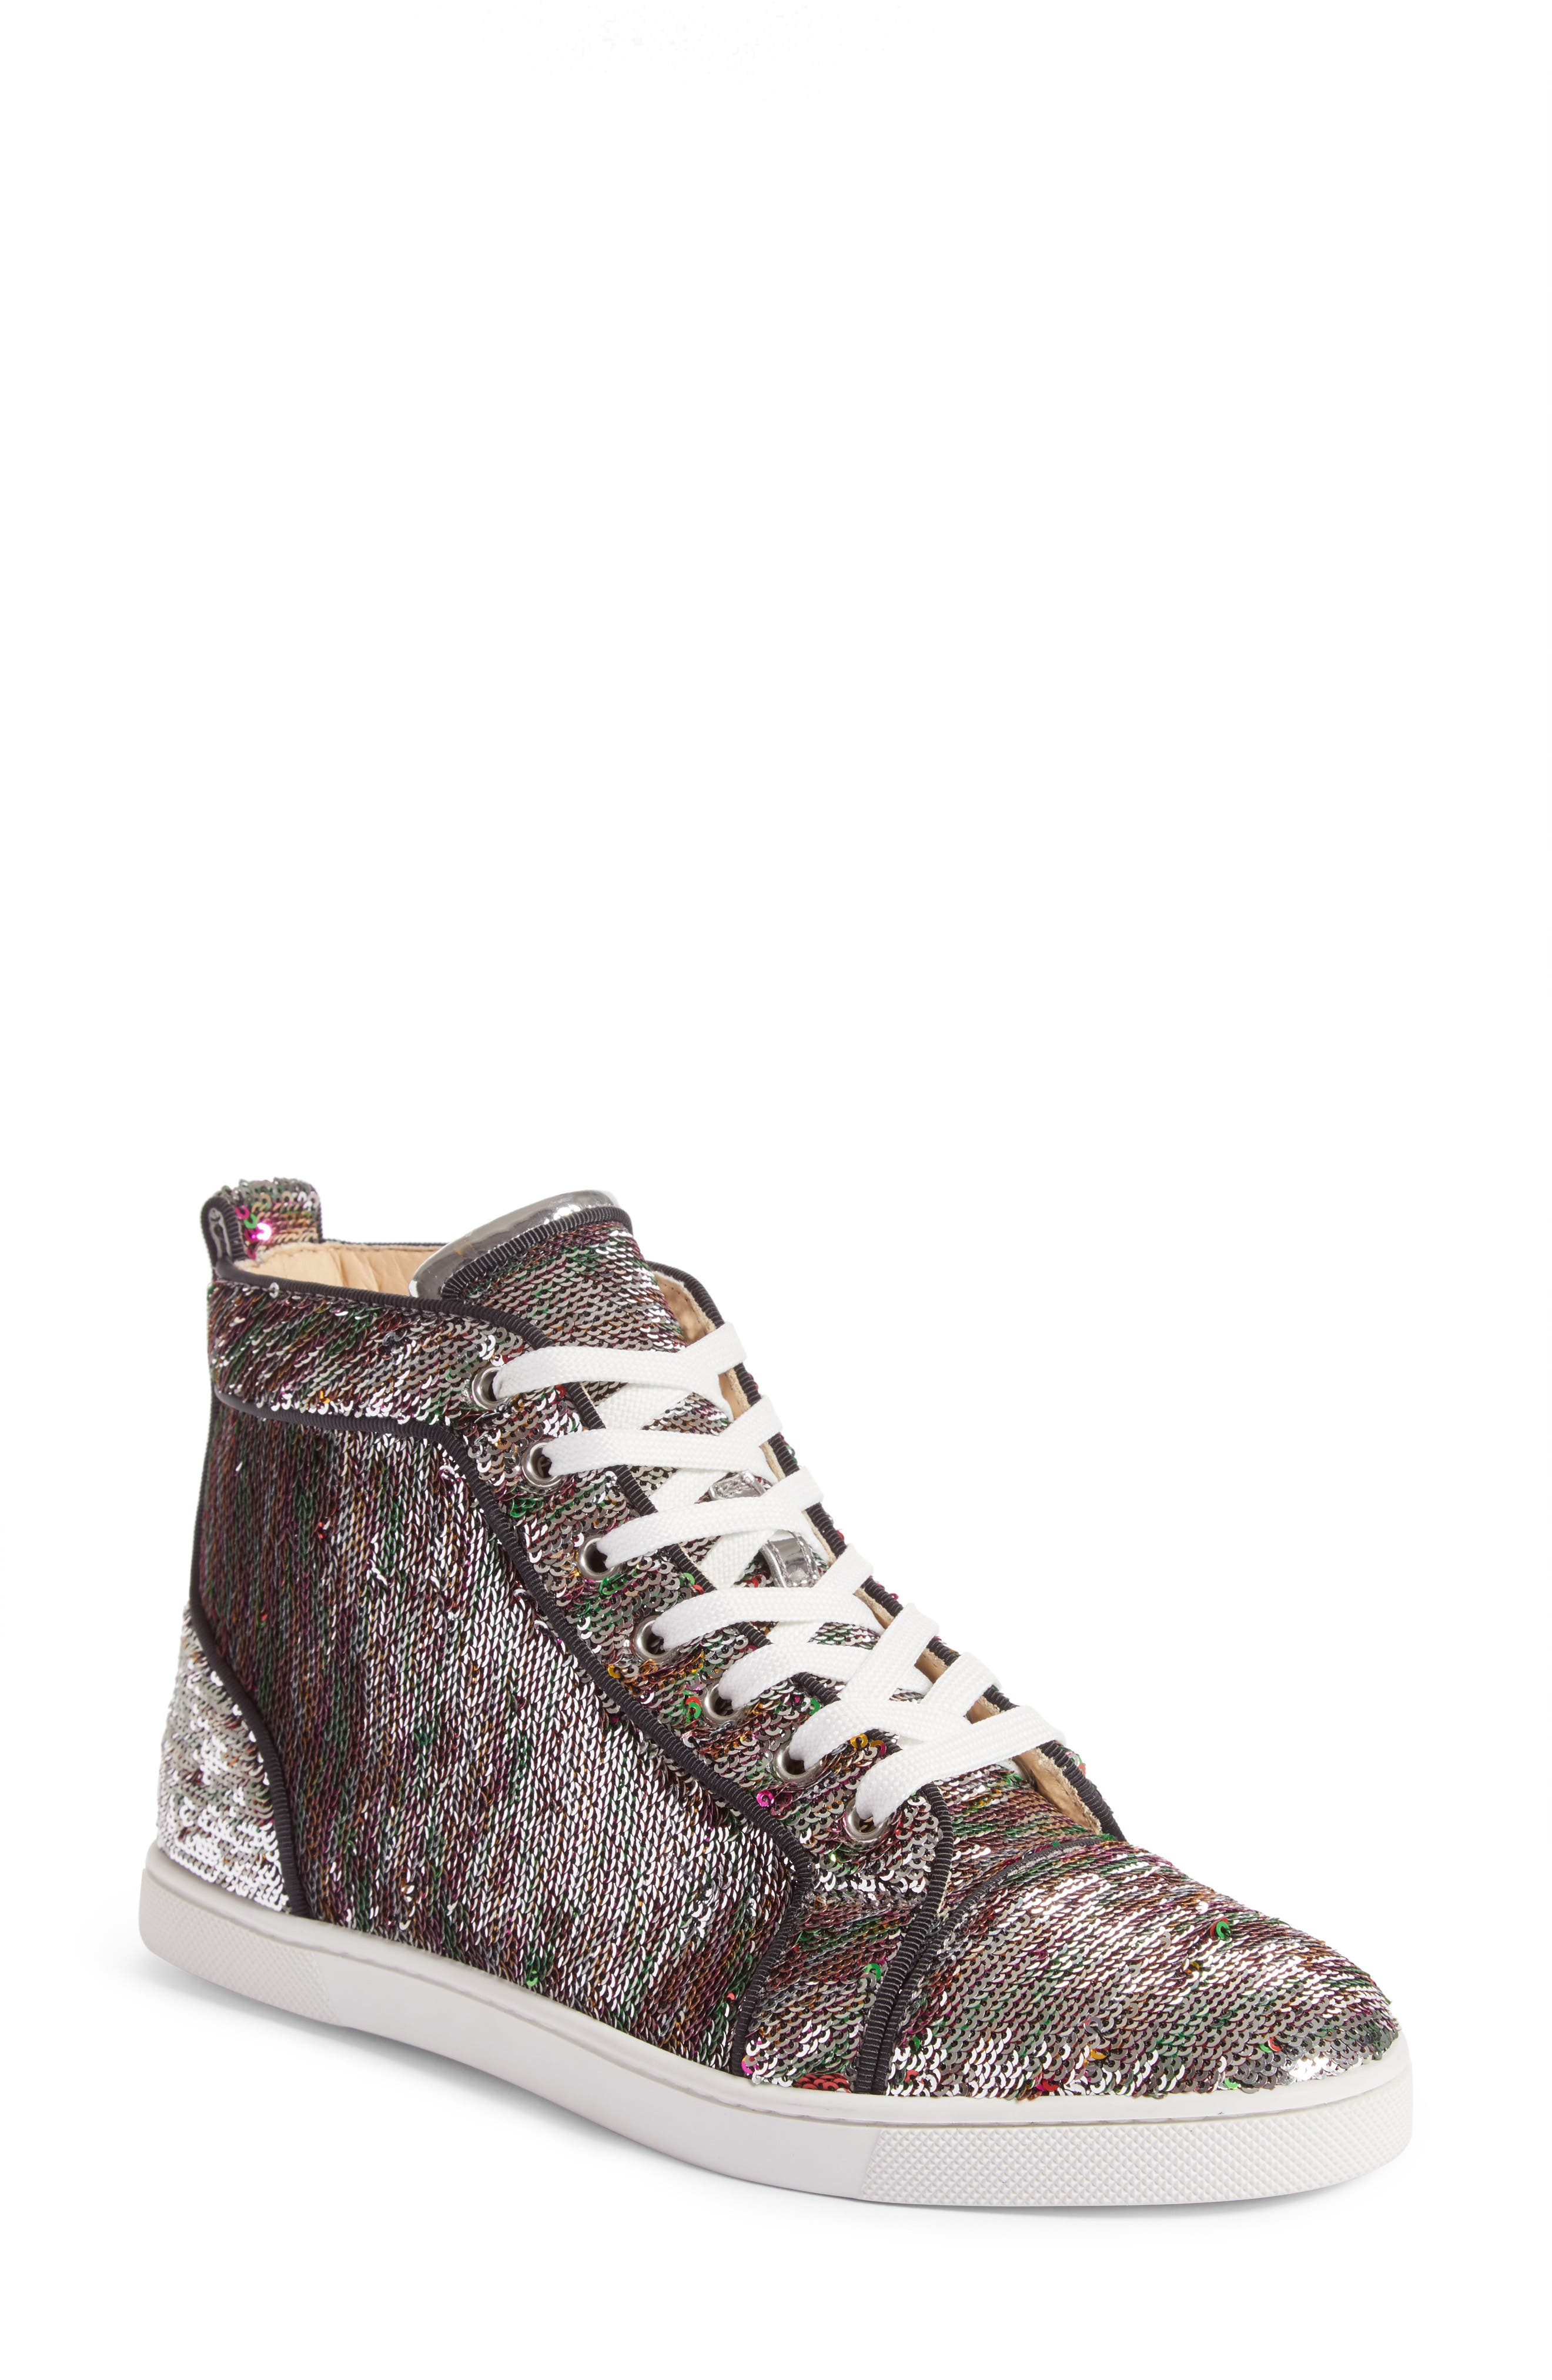 Bip Bip High Top Sneaker,                             Main thumbnail 1, color,